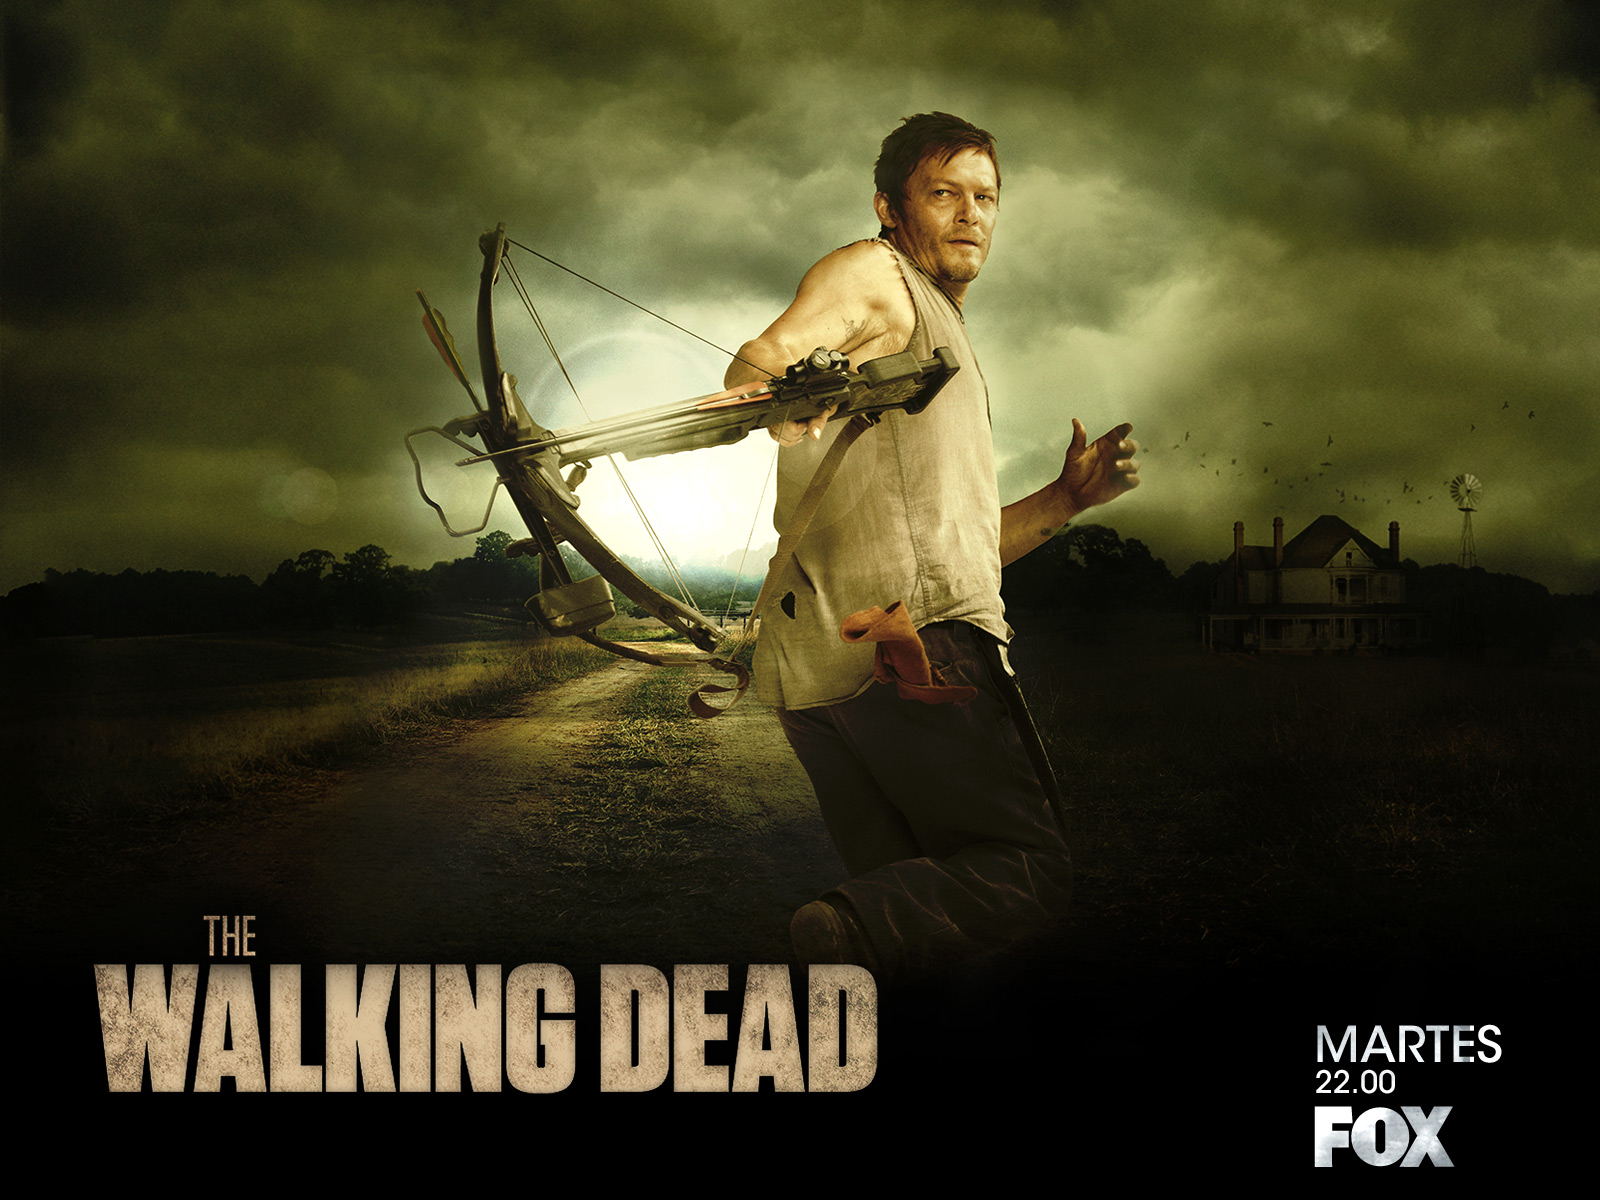 Daryl The Walking Dead Wallpaper 1600x1200 56732